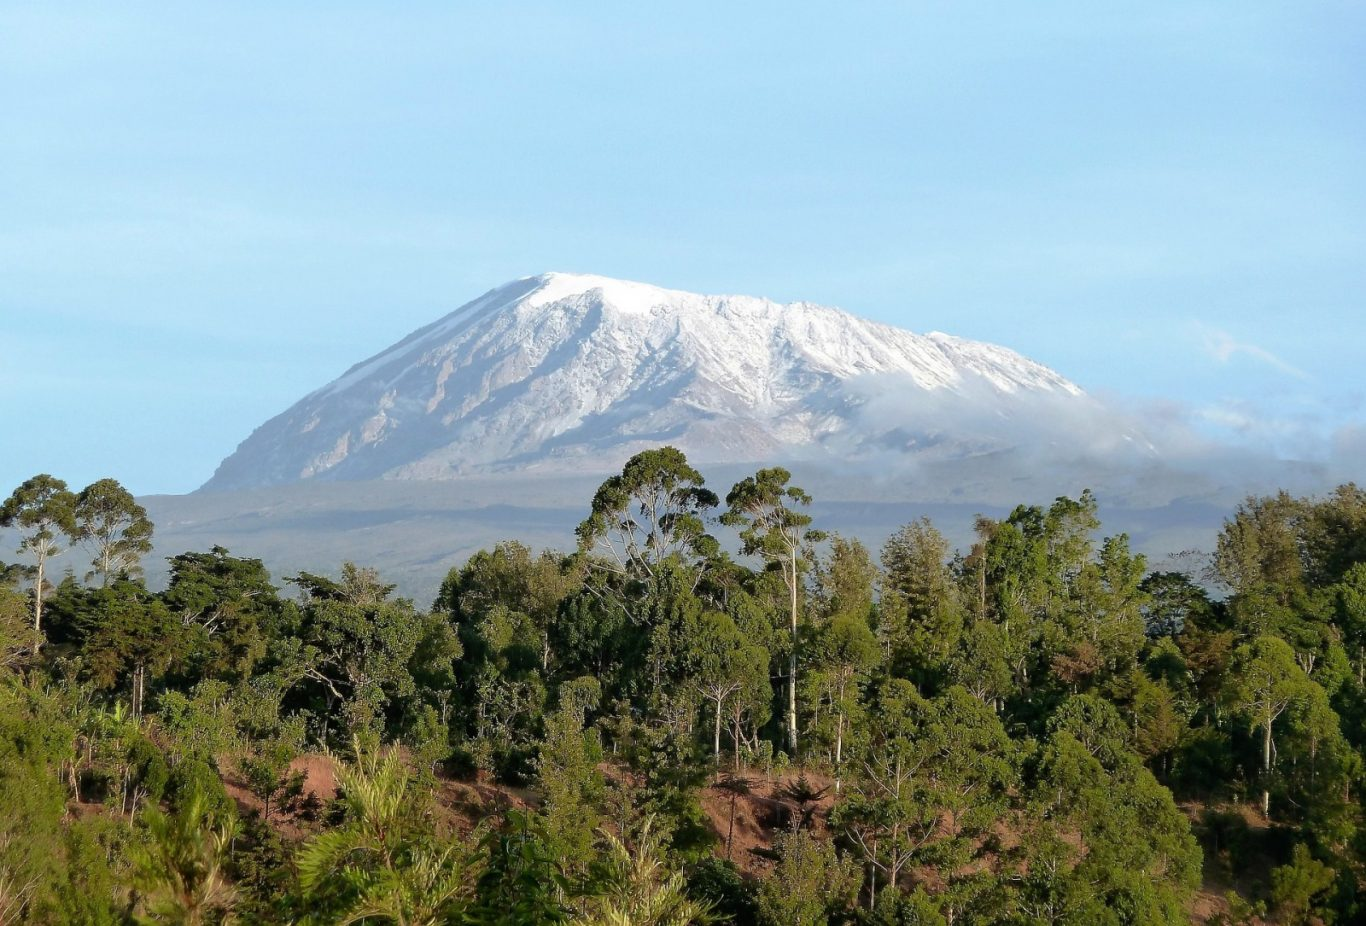 Kilimanjaro Mountain, Roof of Africa